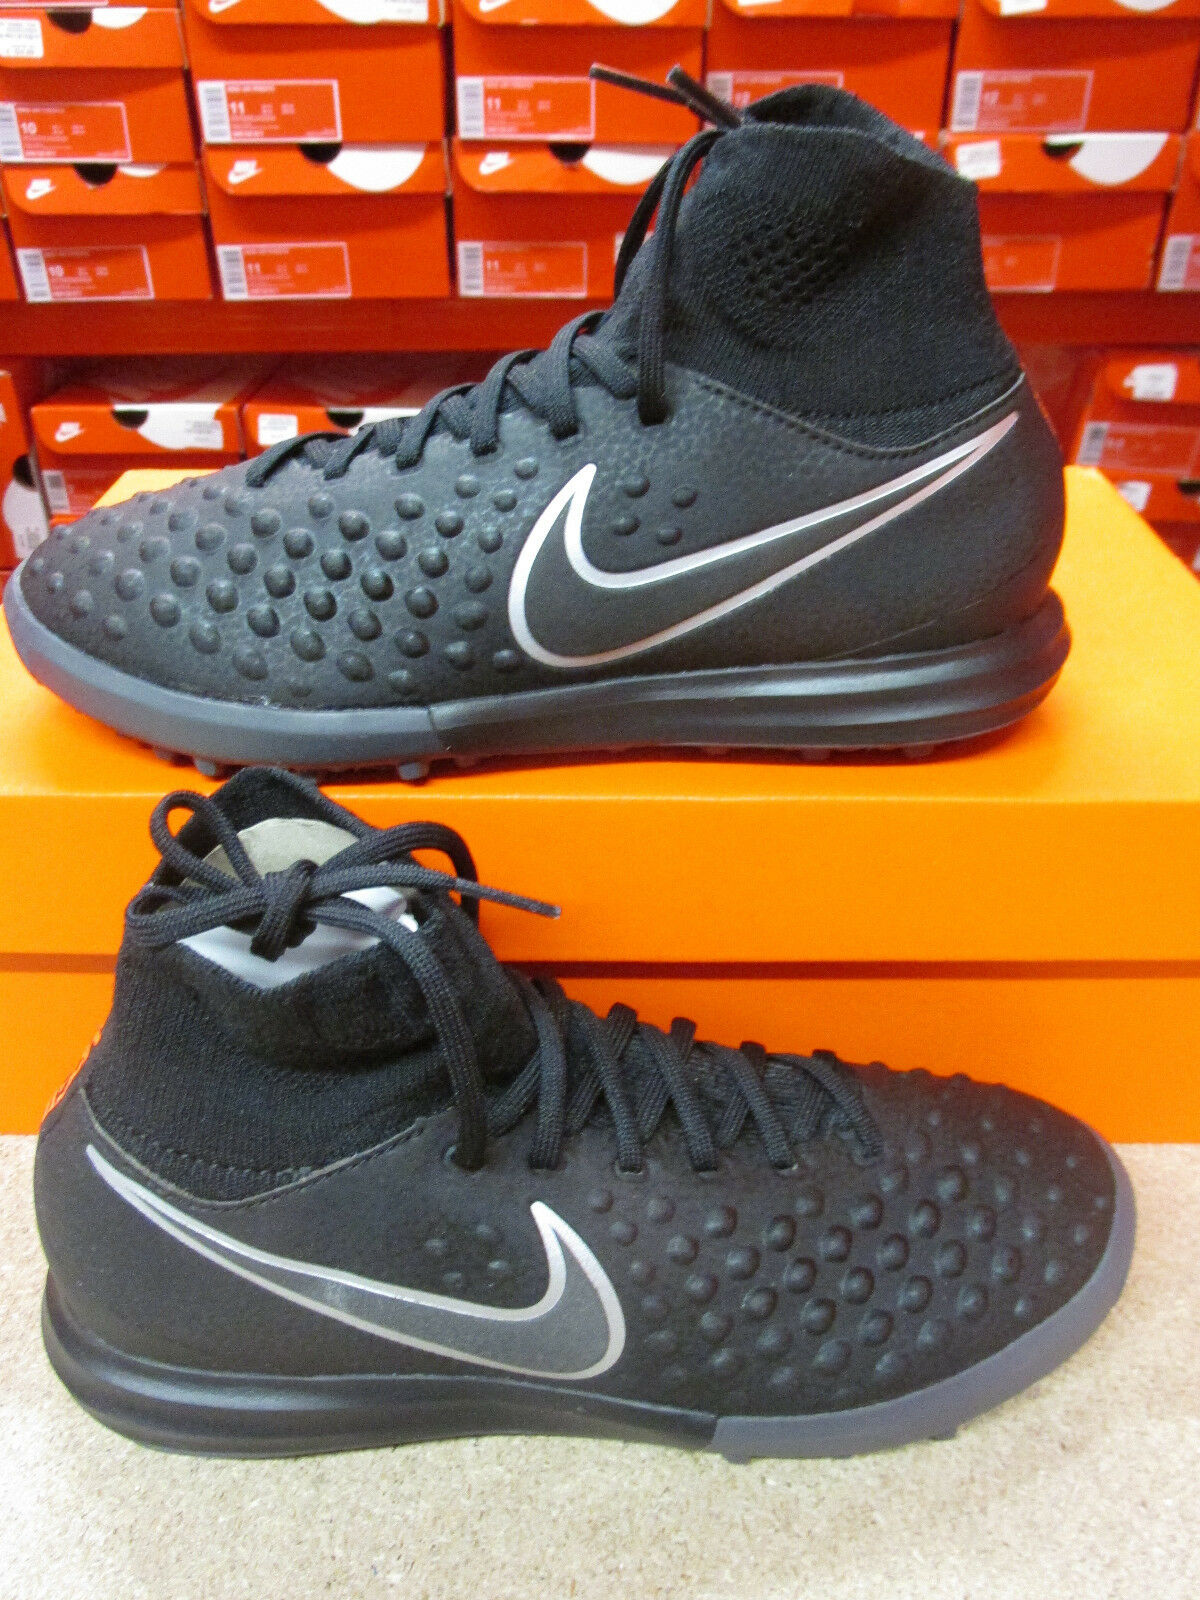 Nike Junior Magistax Proximo II Tf Chaussures de Foot 843956 009 Football